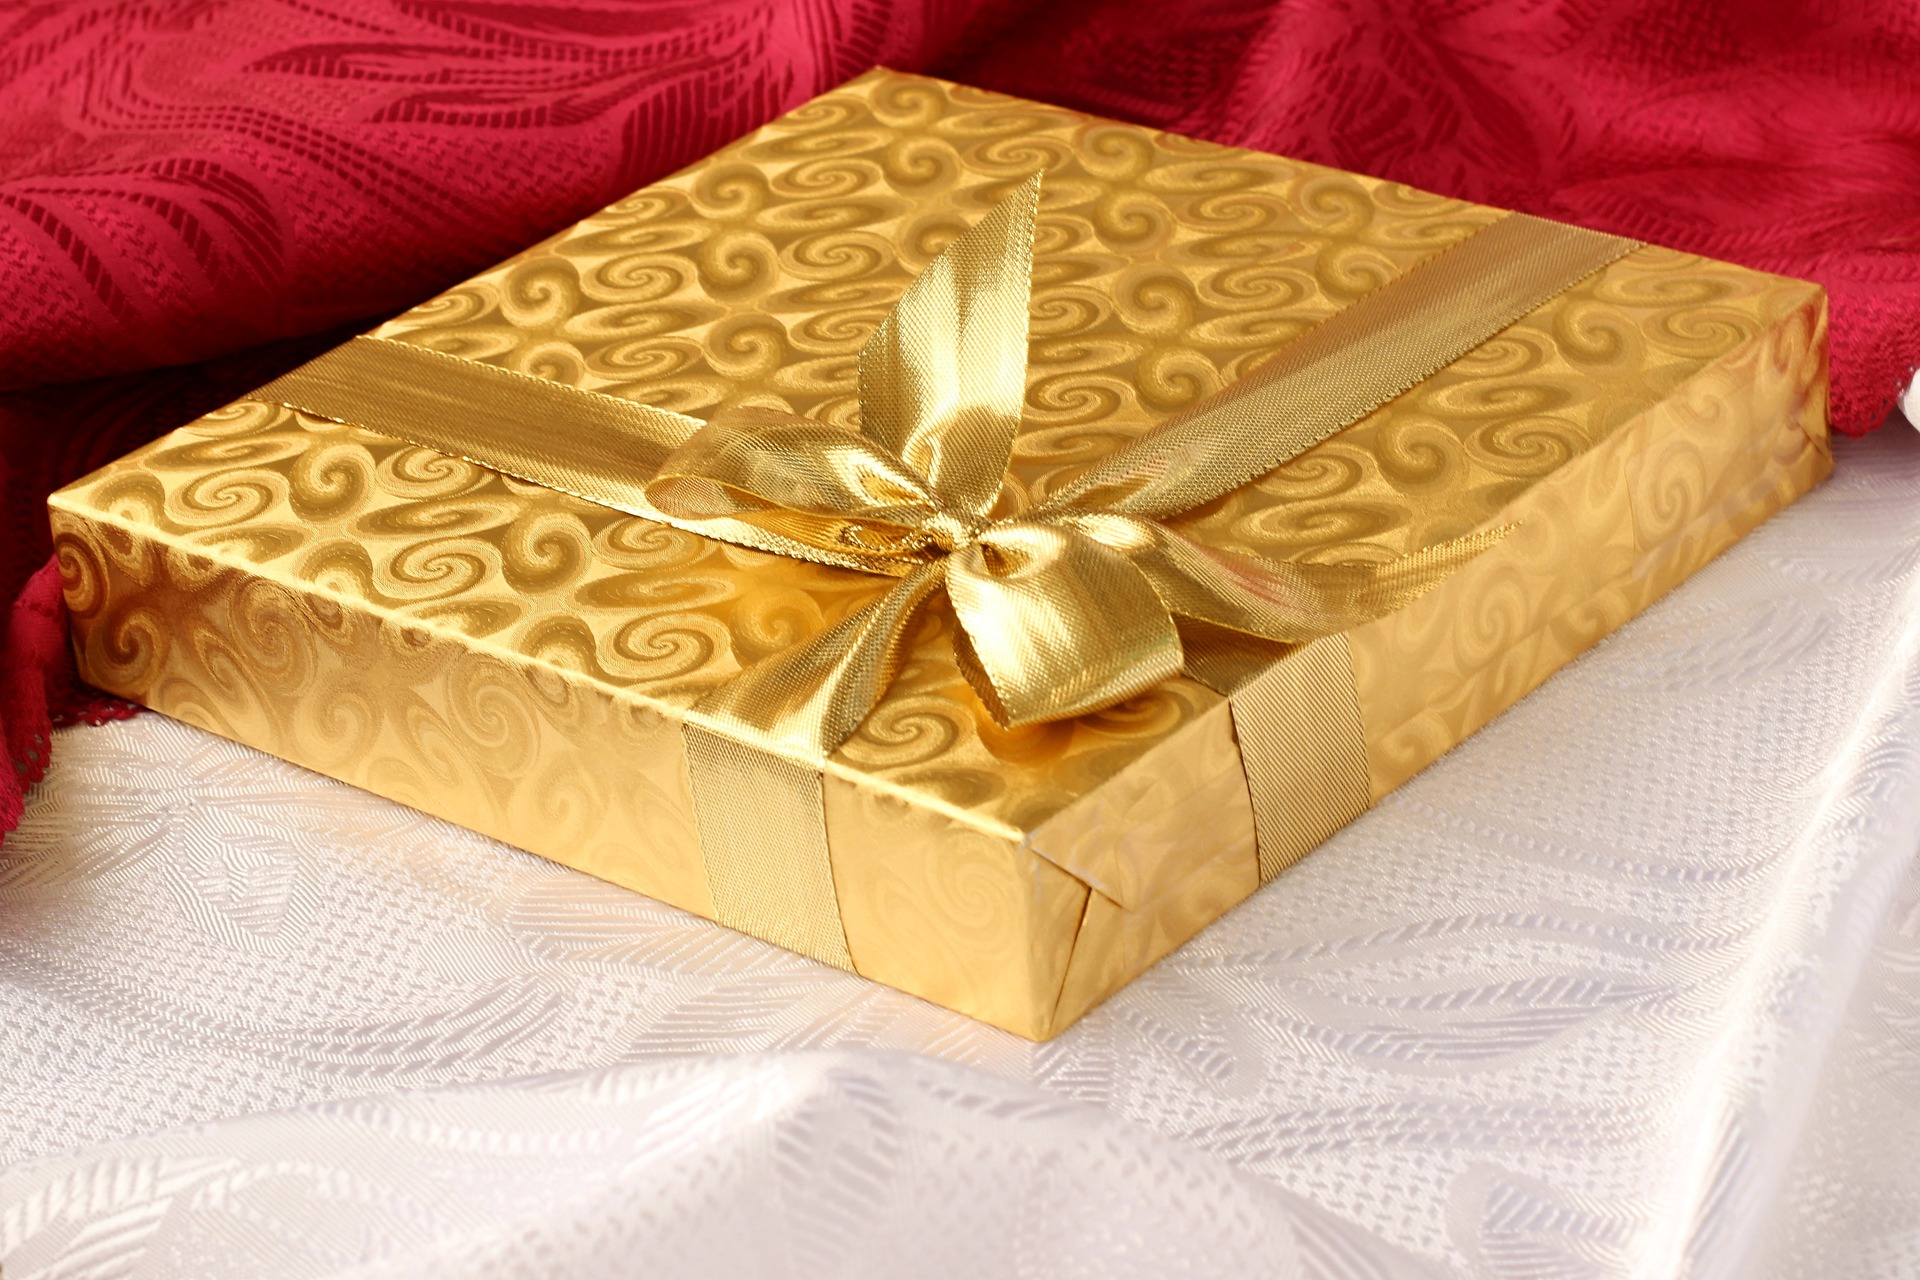 happy holidays 2015 picture of gift wrapped in gold wrapping paper